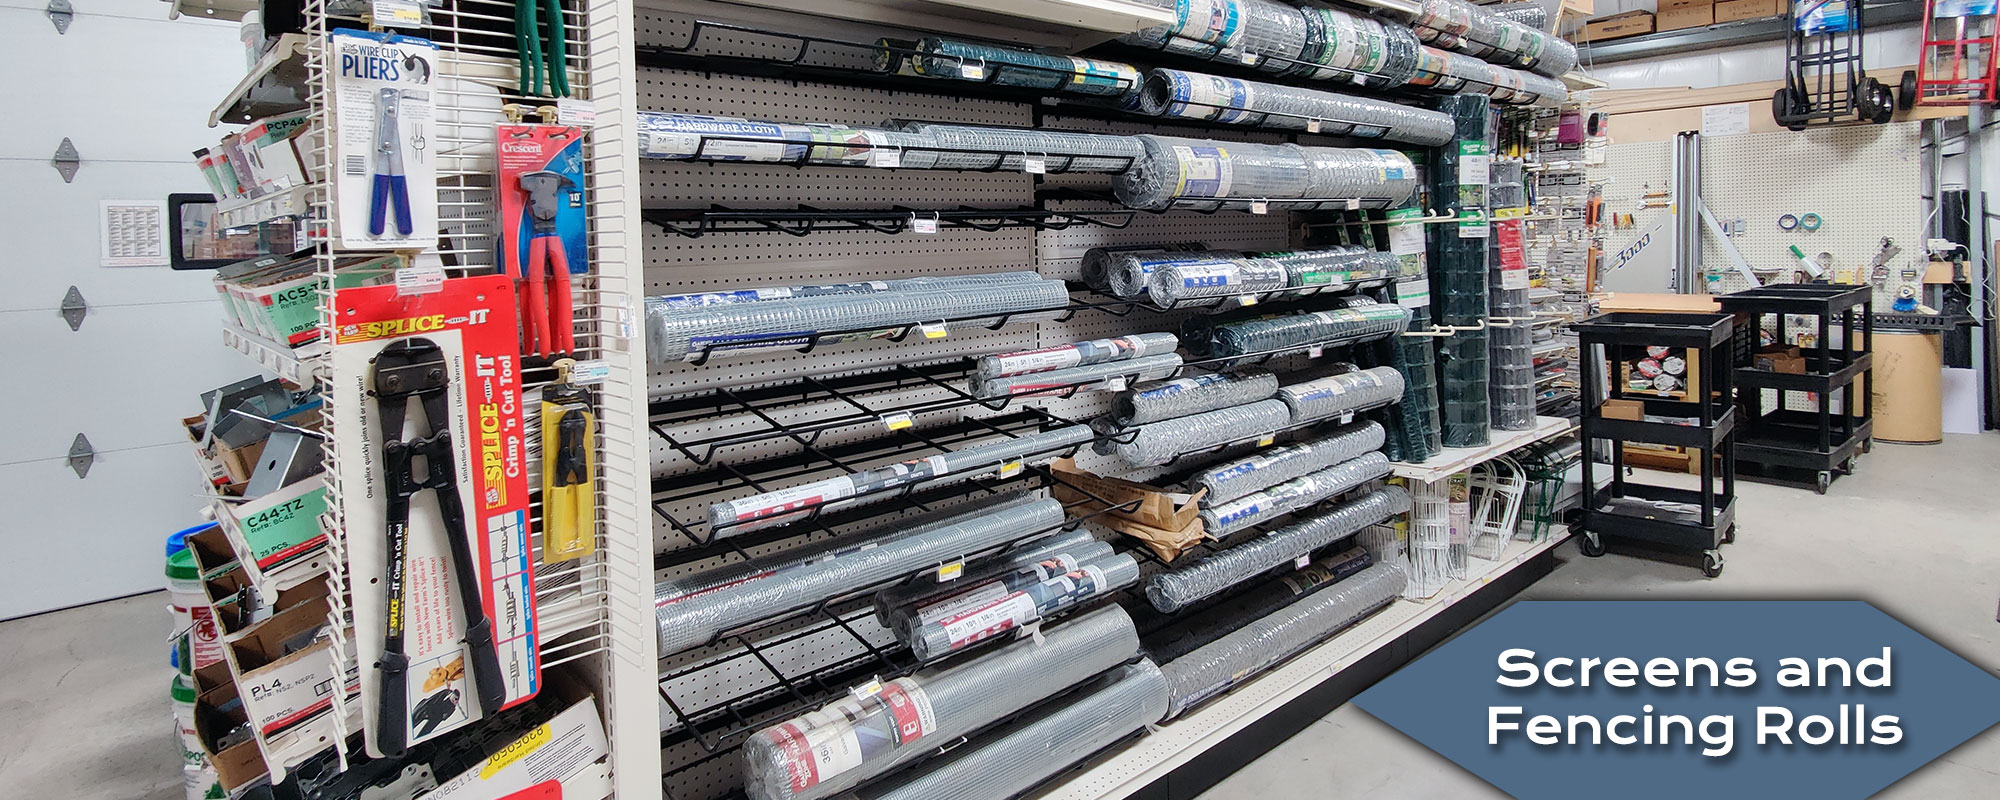 Shop and Buy Screens and Fencing at Harbor Hardware Store in Door County, WI